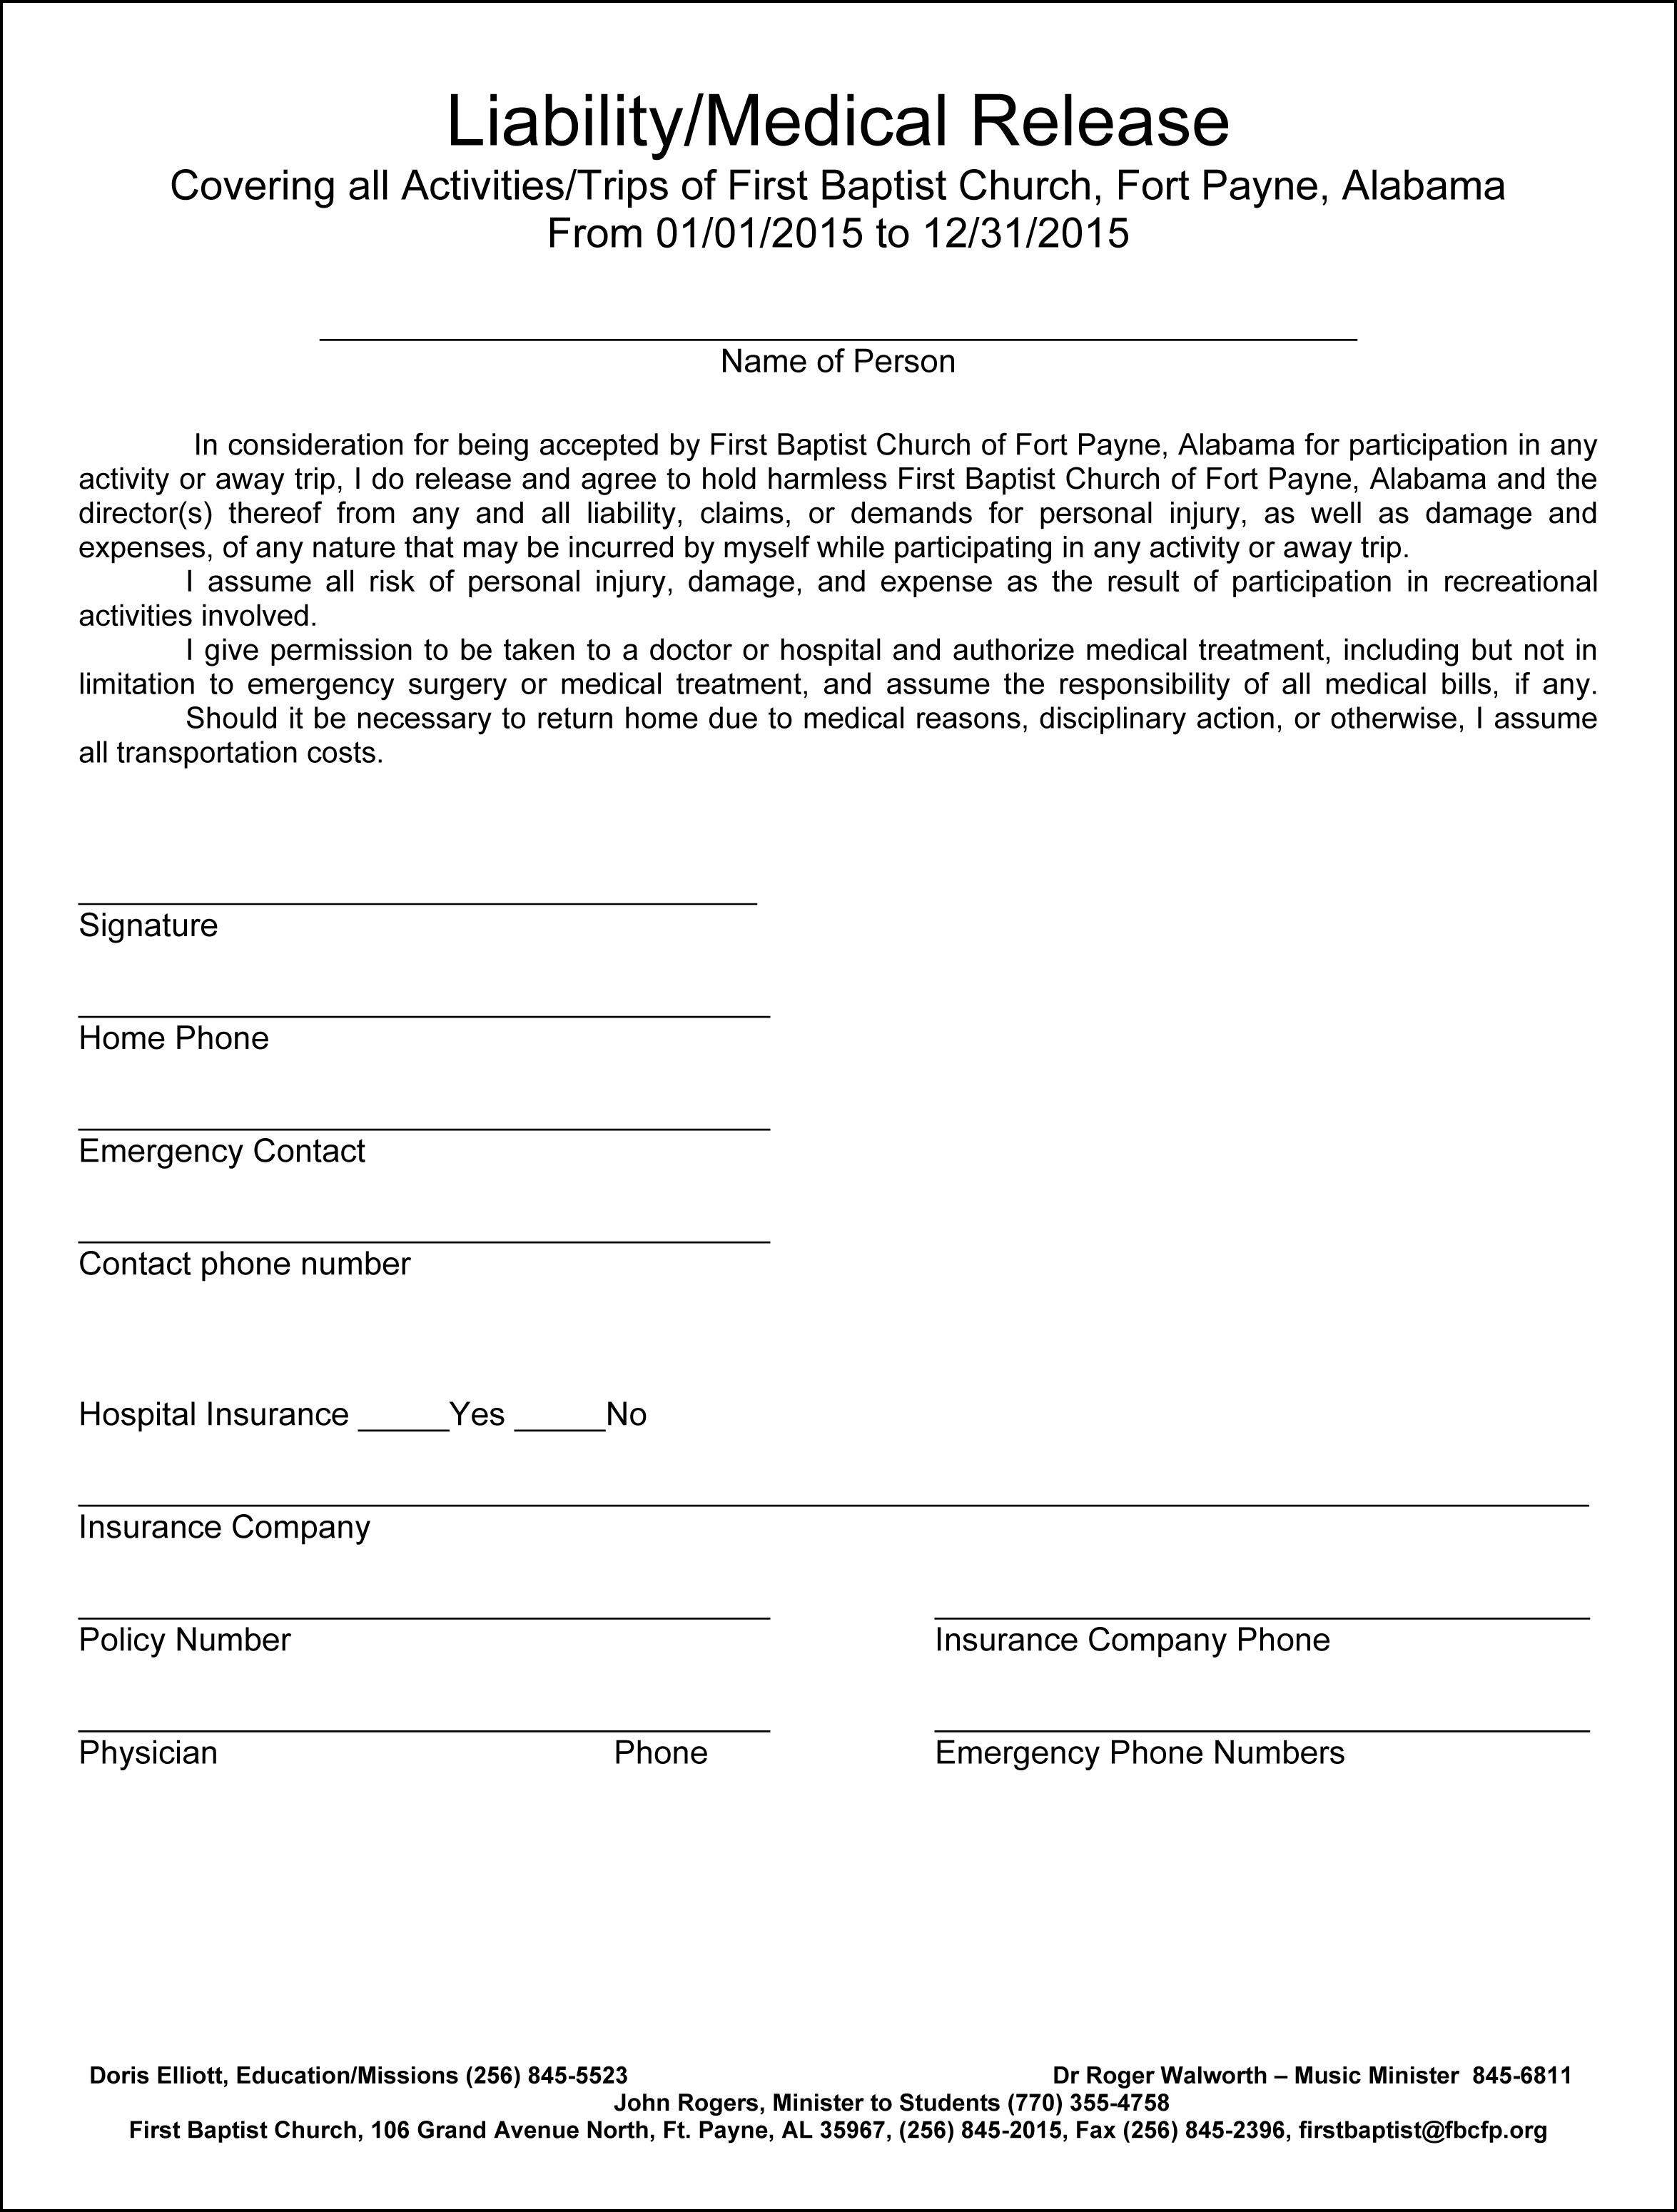 Medical Release Form For Adults Templates Free Printable Medical Release  Form For Adults 2015 Adult Church Liability Form 1(3) CAfKBv Medical Release  Form ...  Free Printable Liability Release Form